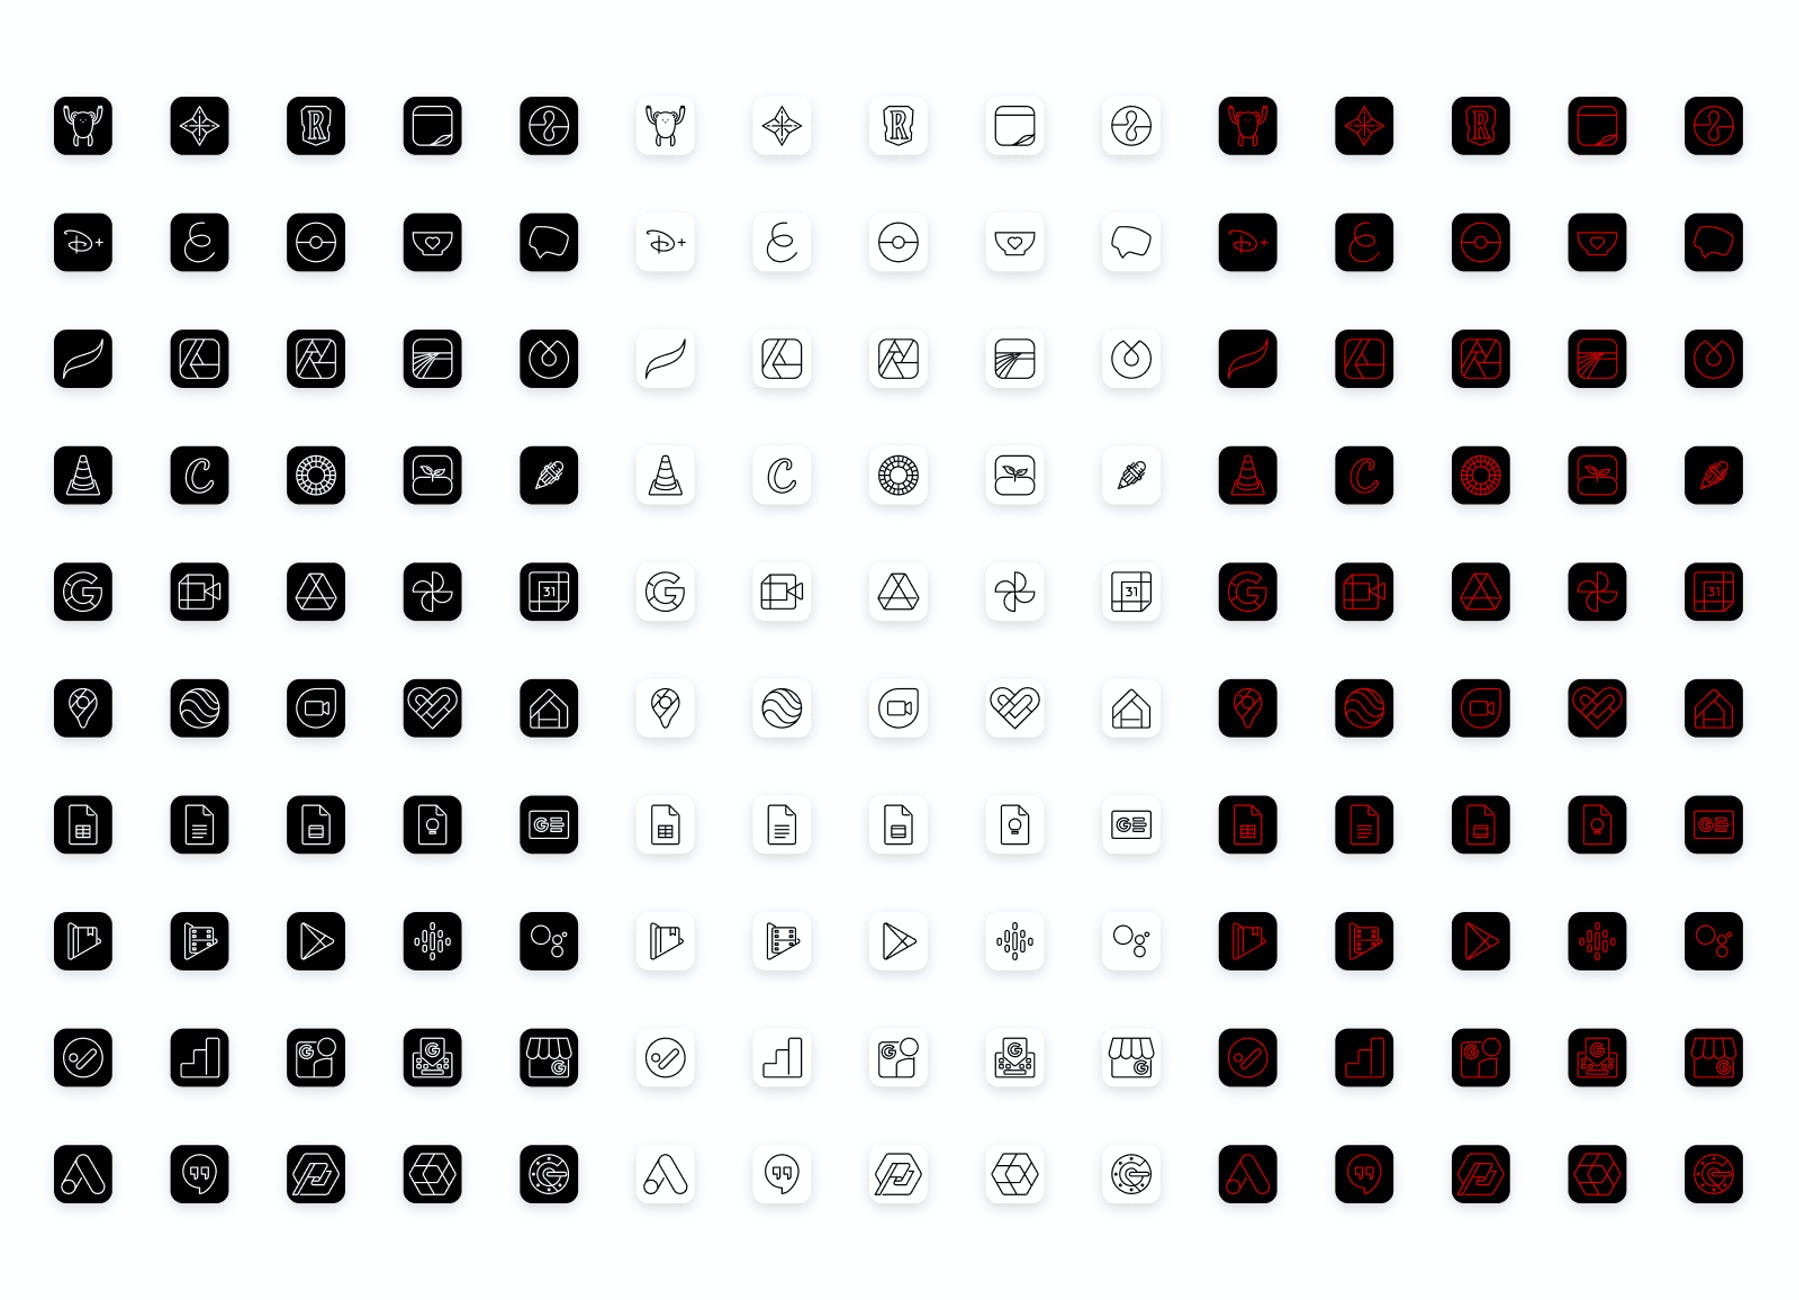 50 new custom iOS designs for the Lucid Premium icon pack, in black, white, and scarlet.